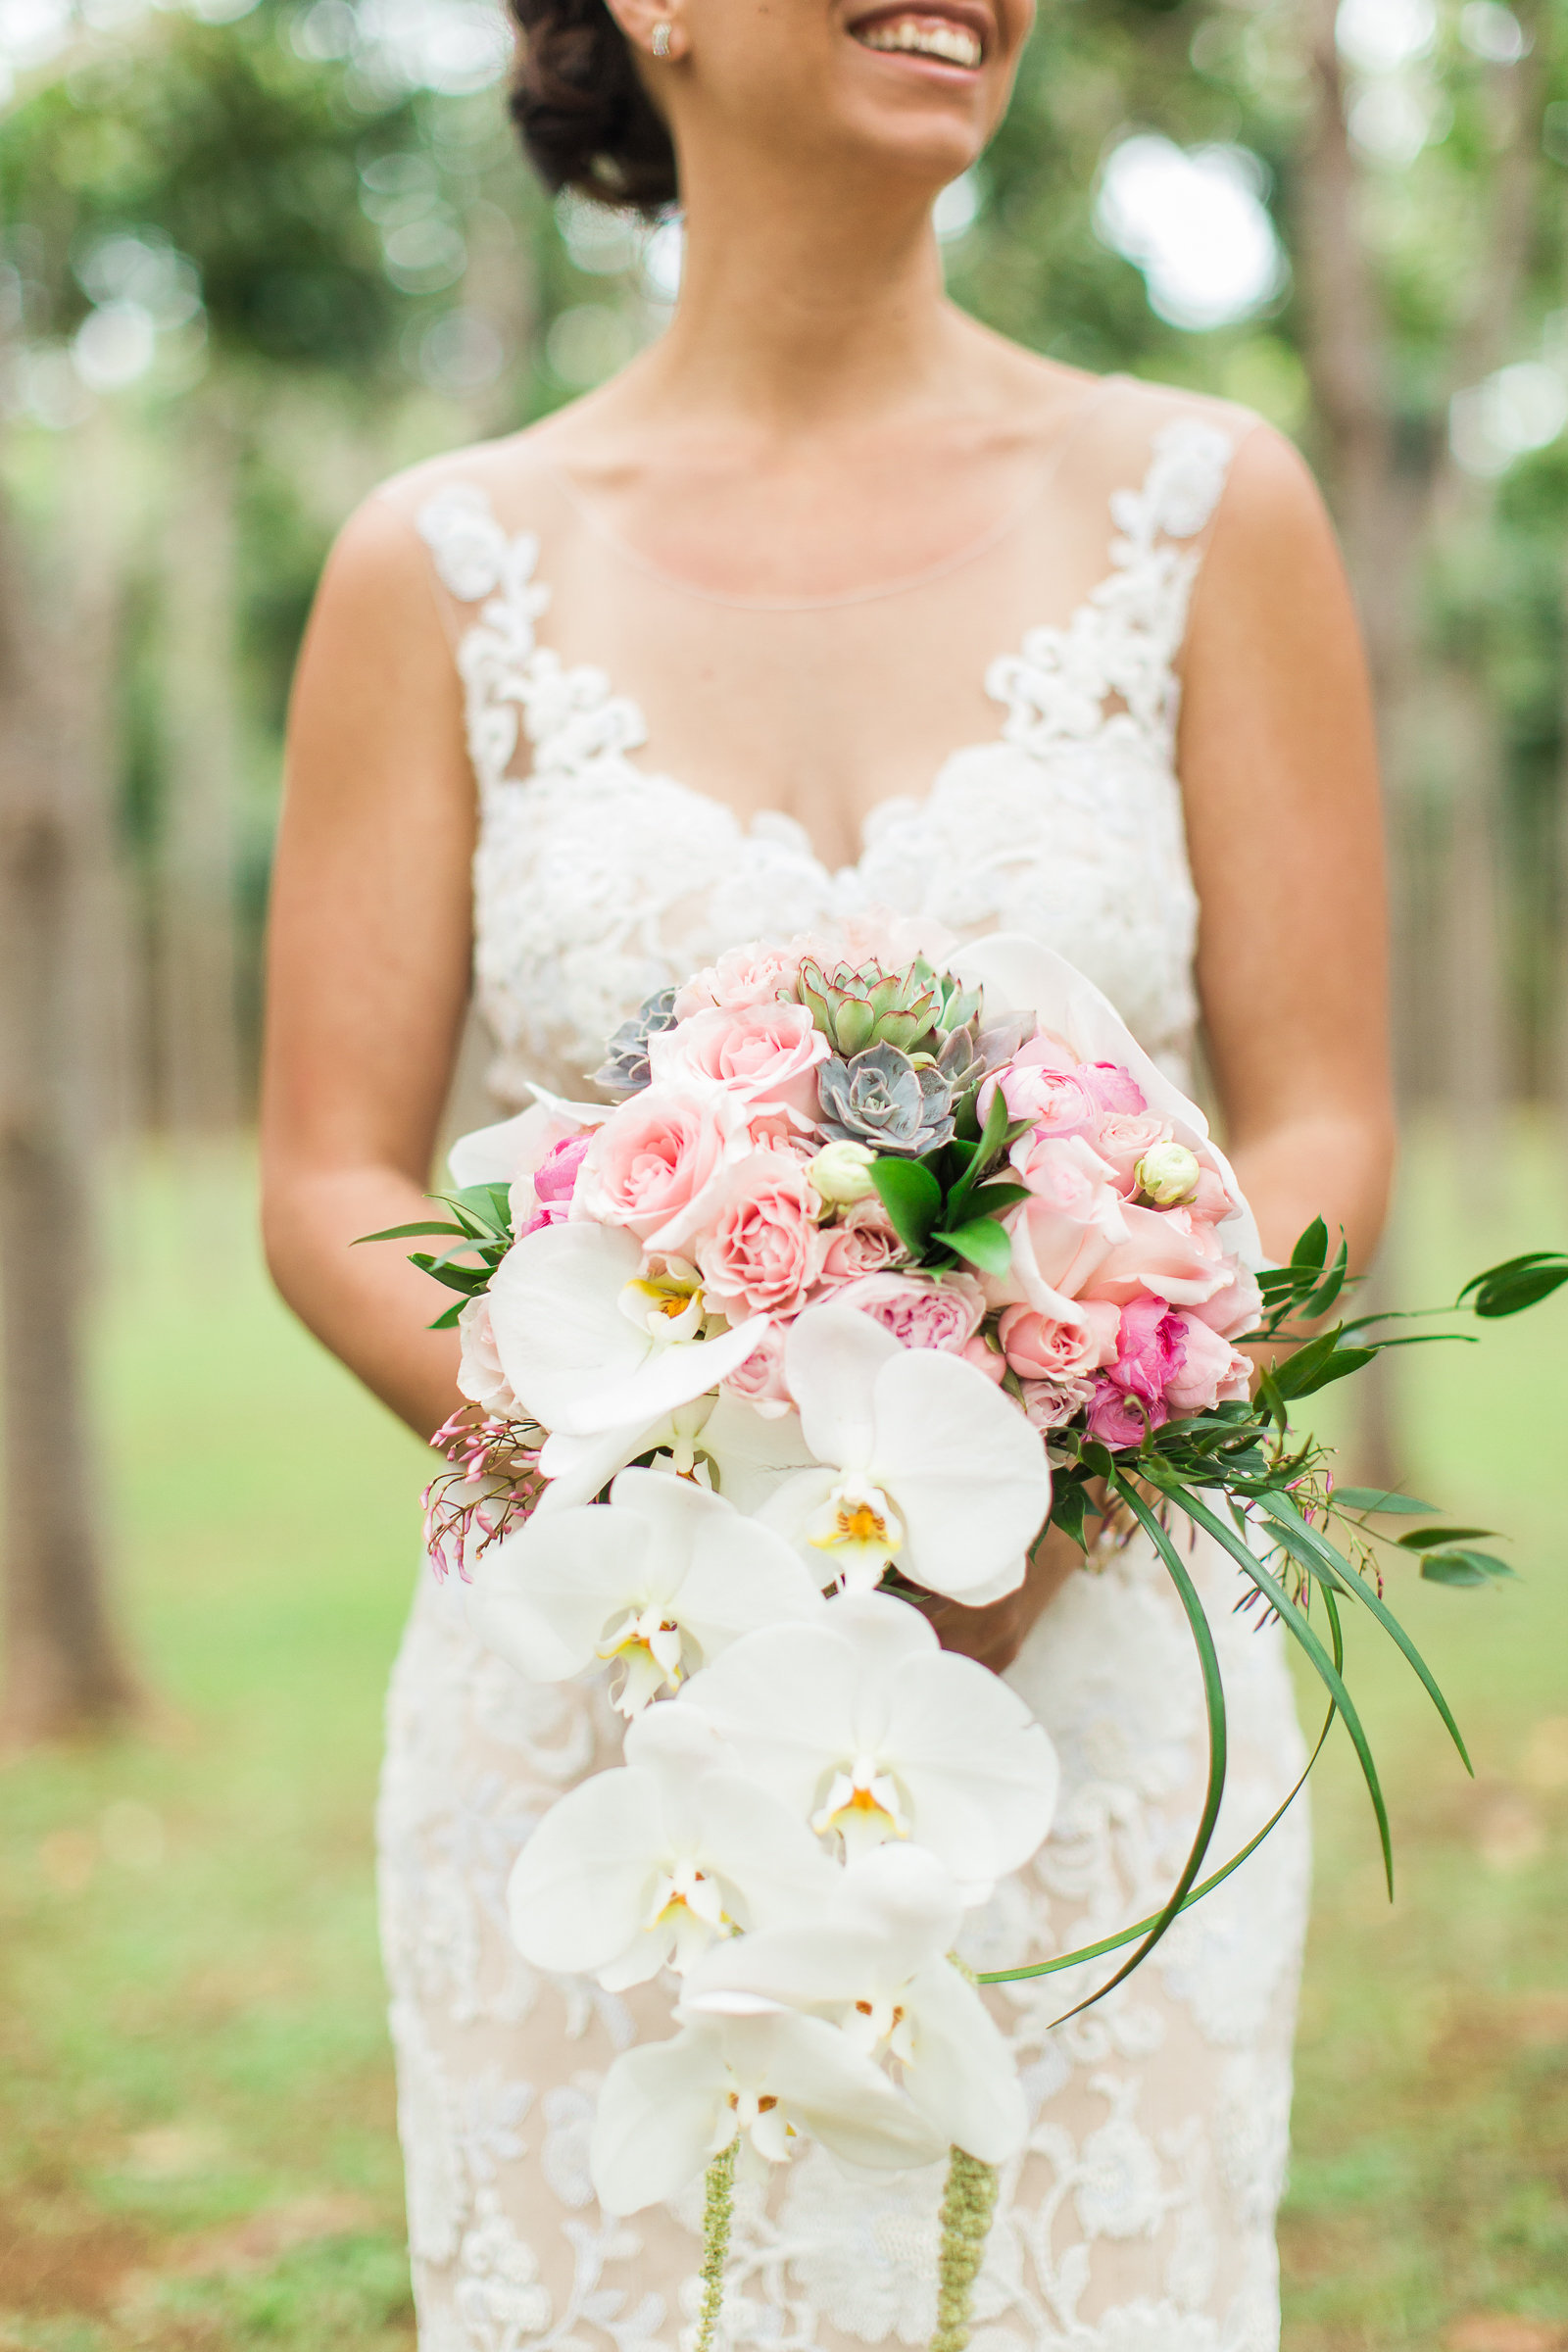 Bridal Bouquet Crafted from Orchids, Pink Roses and Succulents